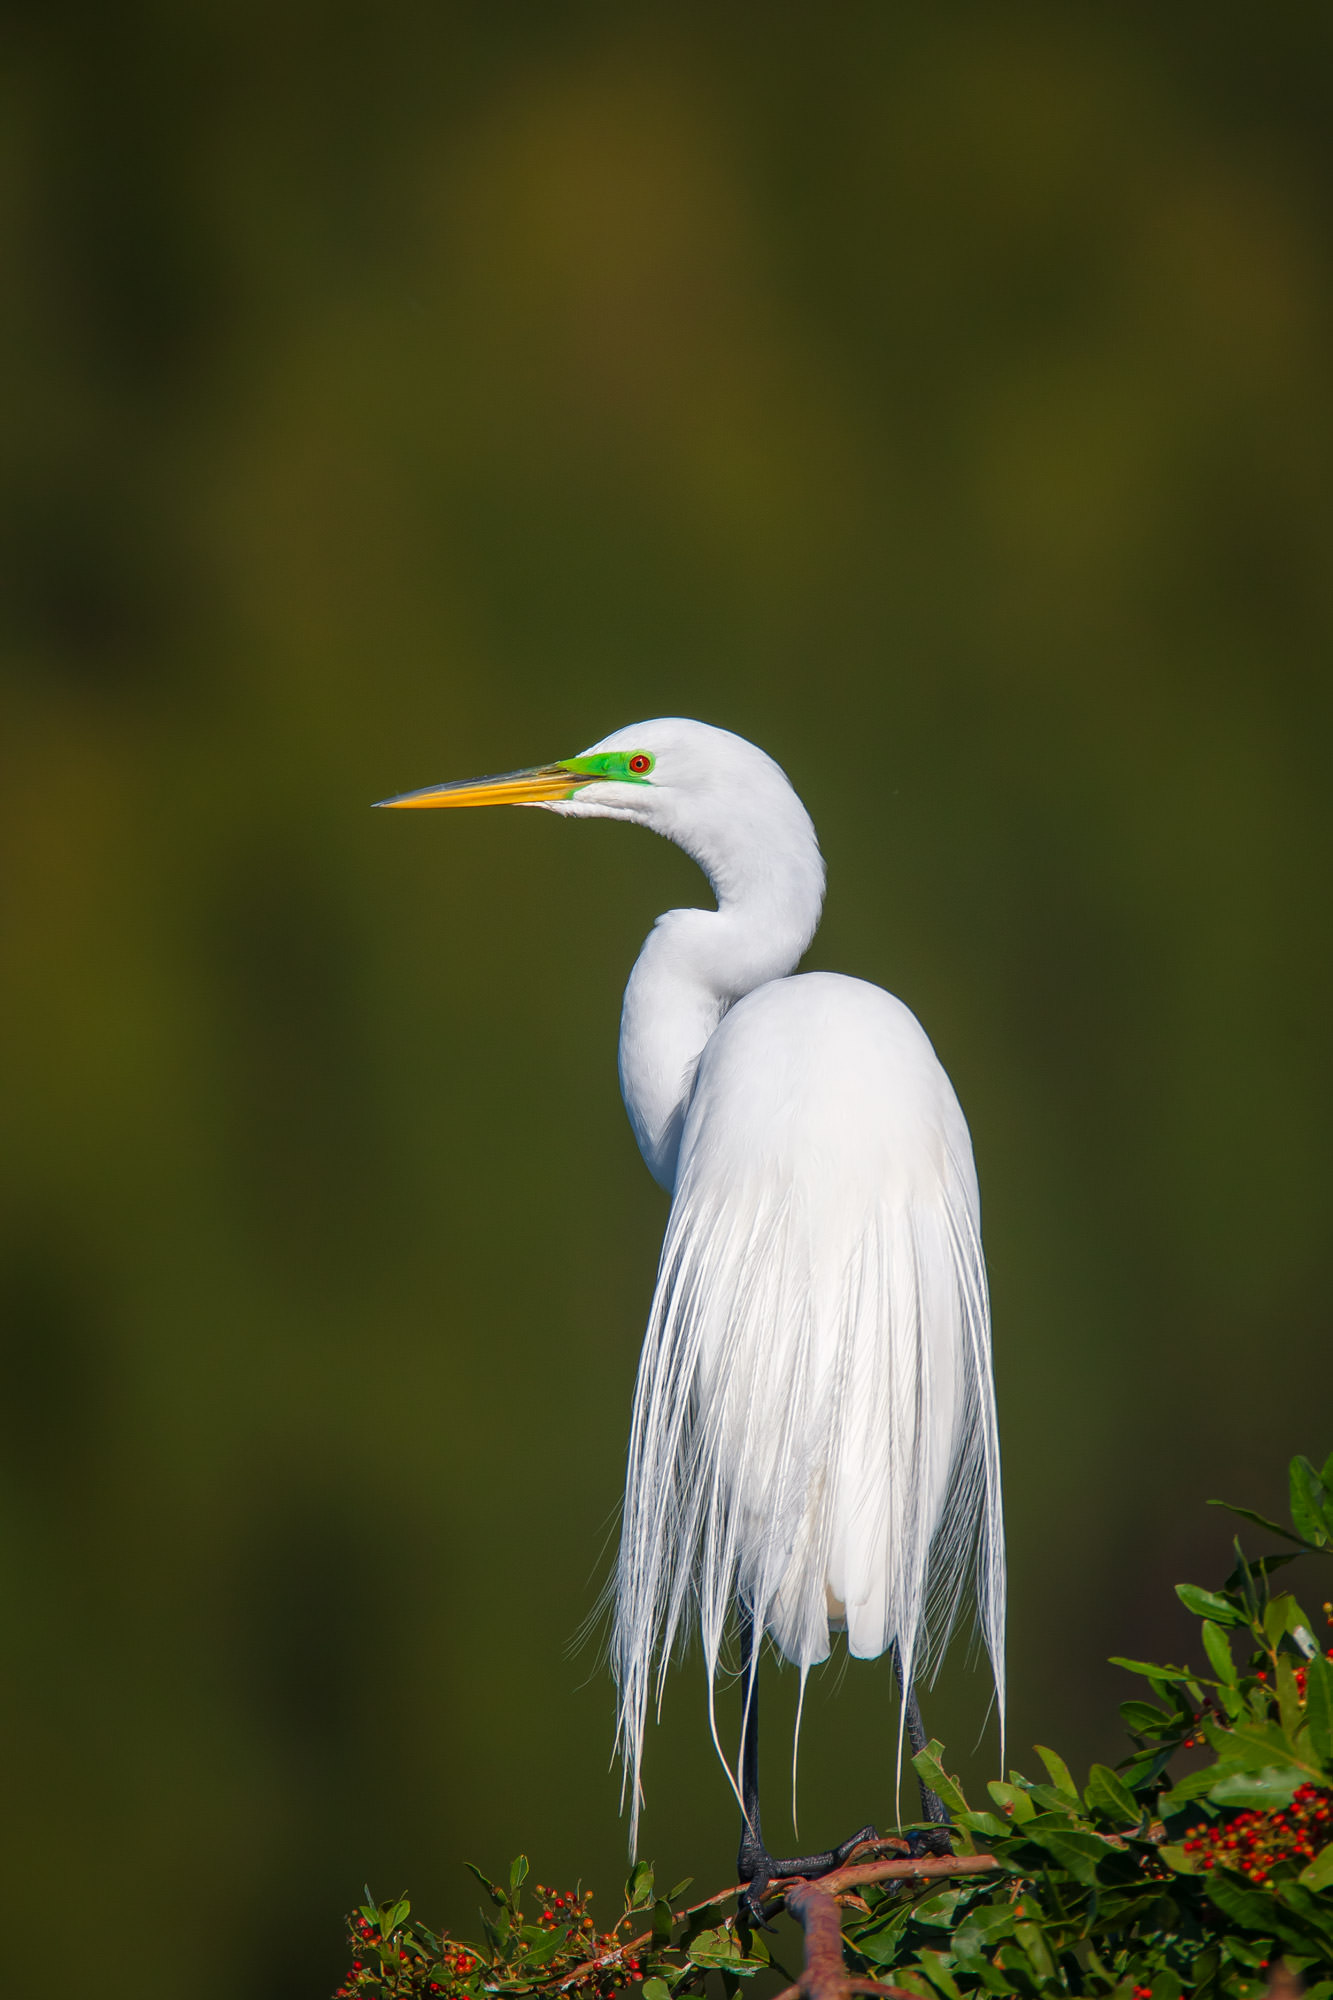 Egret, Great Egret, Florida, limited edition, photograph, fine art, wildlife, photo